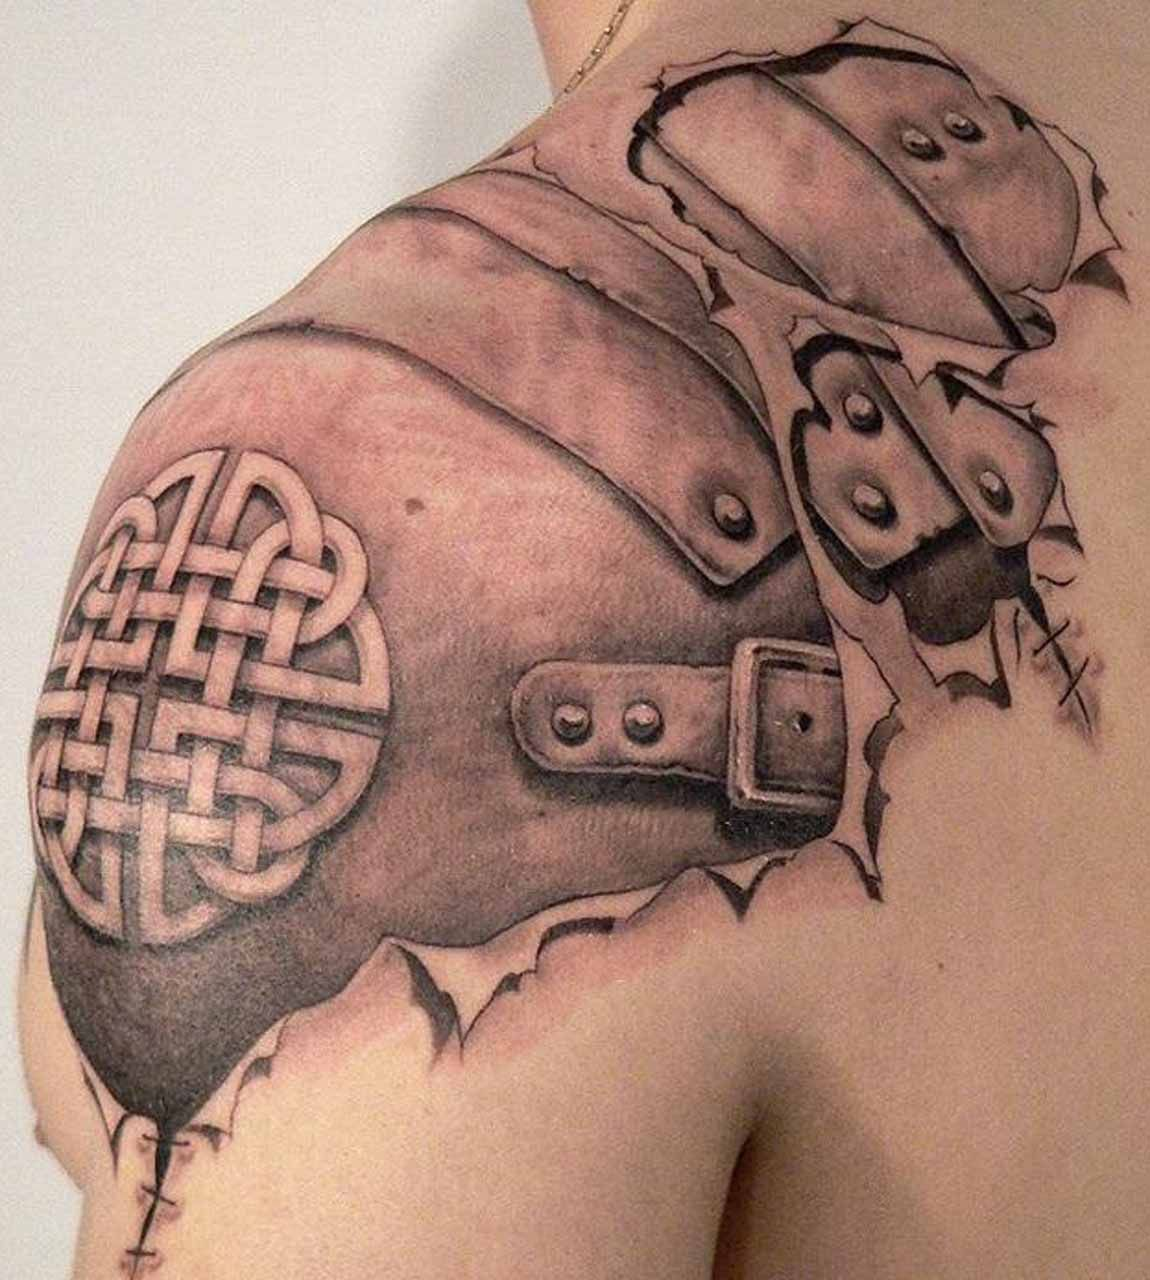 Tribal Tattoo On Shoulder Info Actually A Really Neat Looking Tribal Tattoo Tattoos Shoulder Armor Tattoo Armor Tattoo Und Celtic Tattoos